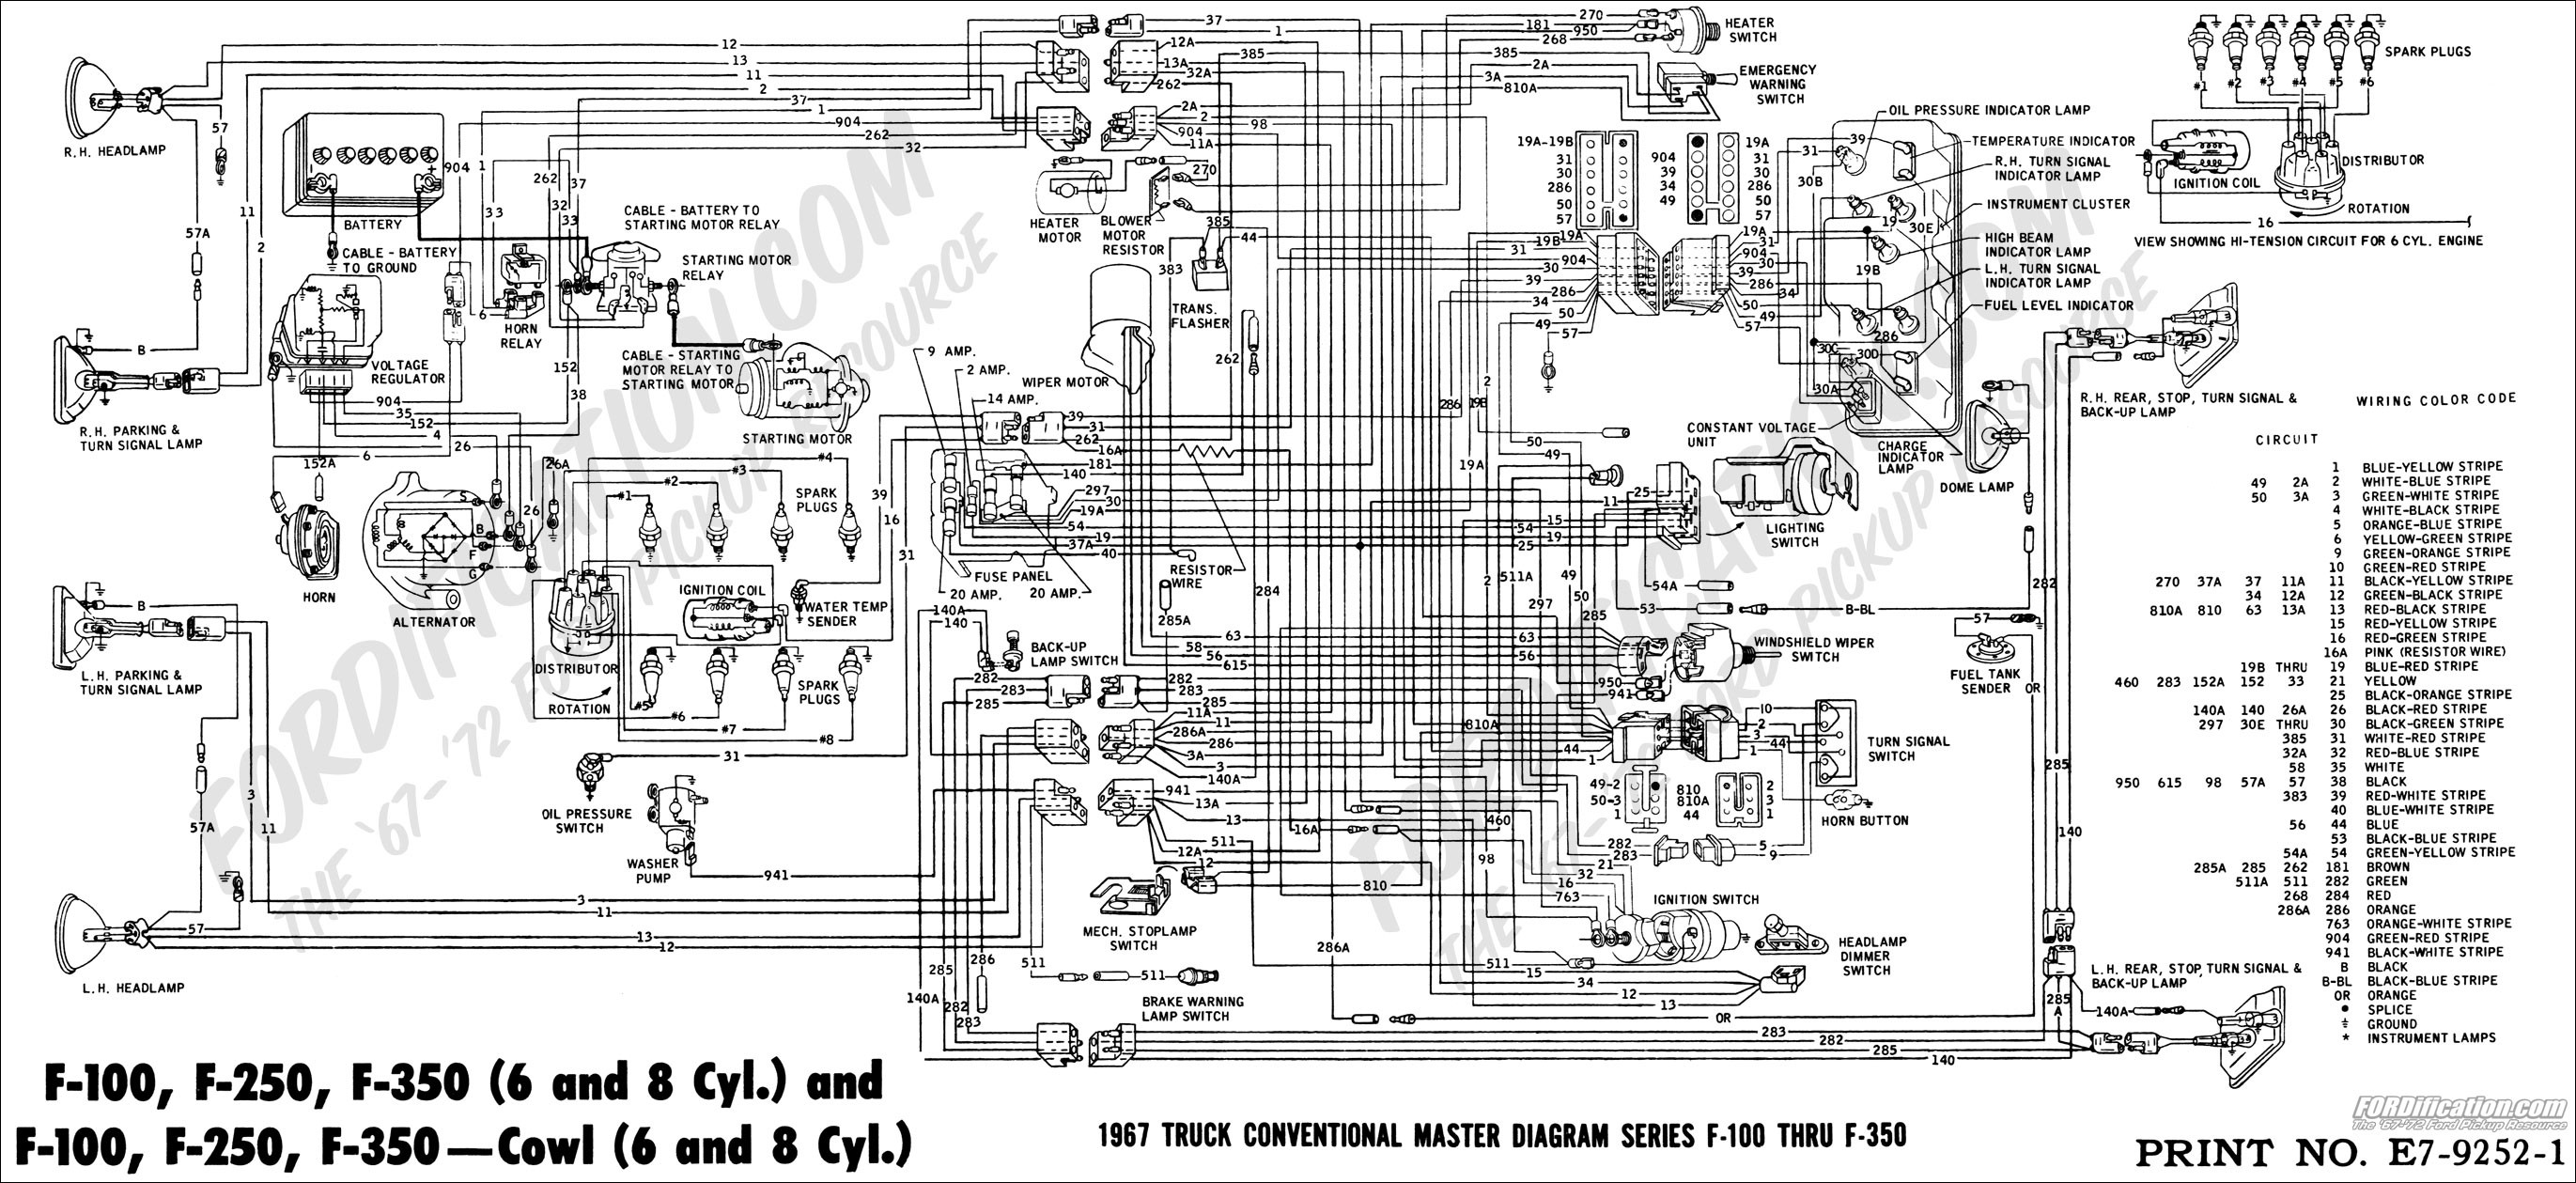 2001 F150 Wiring Diagram 2007 ford Ranger Wiring Diagram Canopi Of 2001 F150 Wiring Diagram